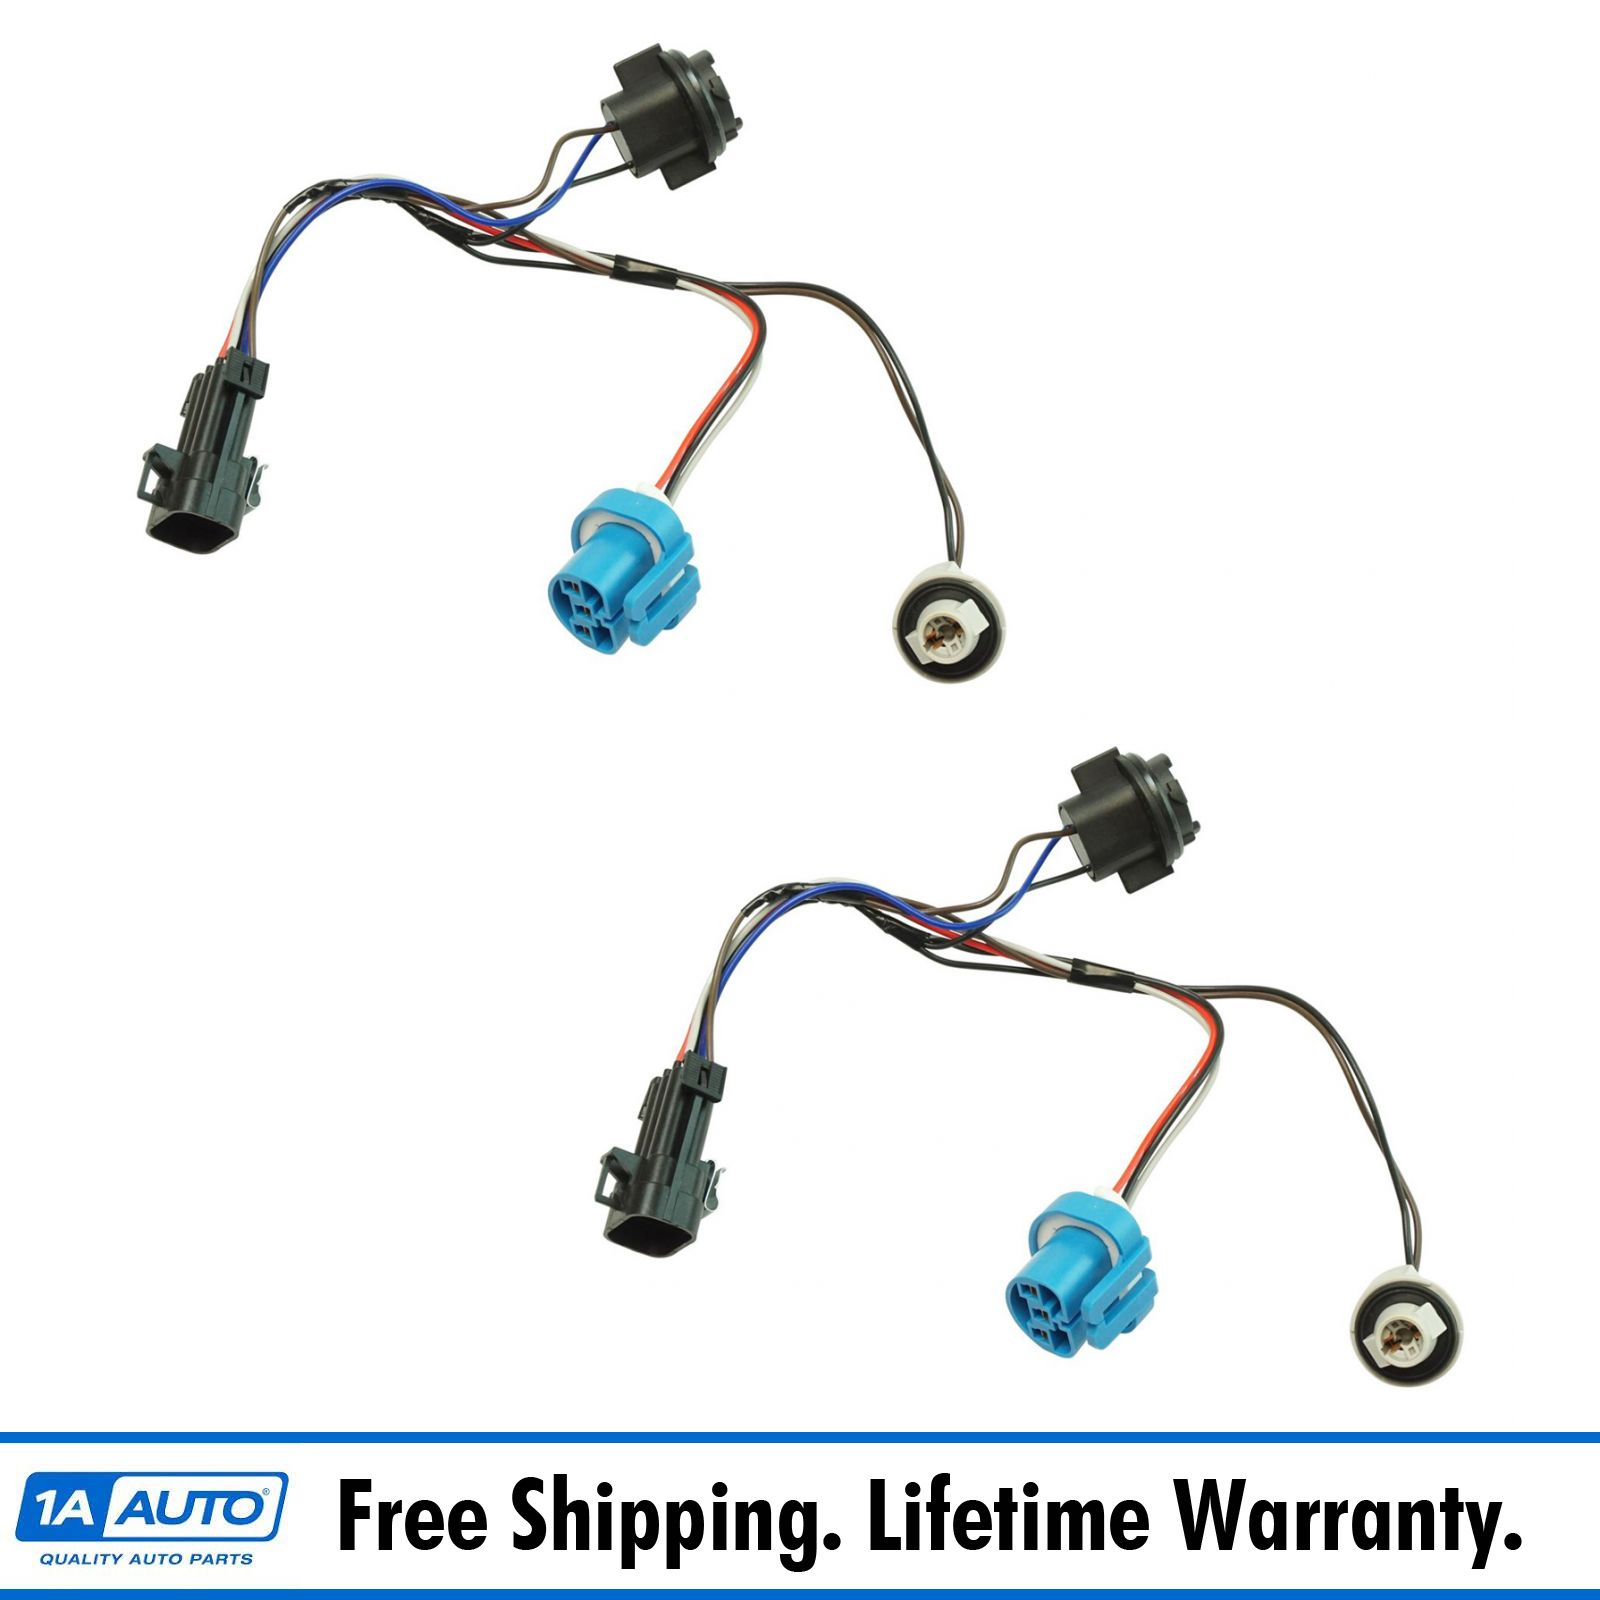 hight resolution of dorman headlight wiring harness side pair for chevy cobalt pontiac g5 pursuit